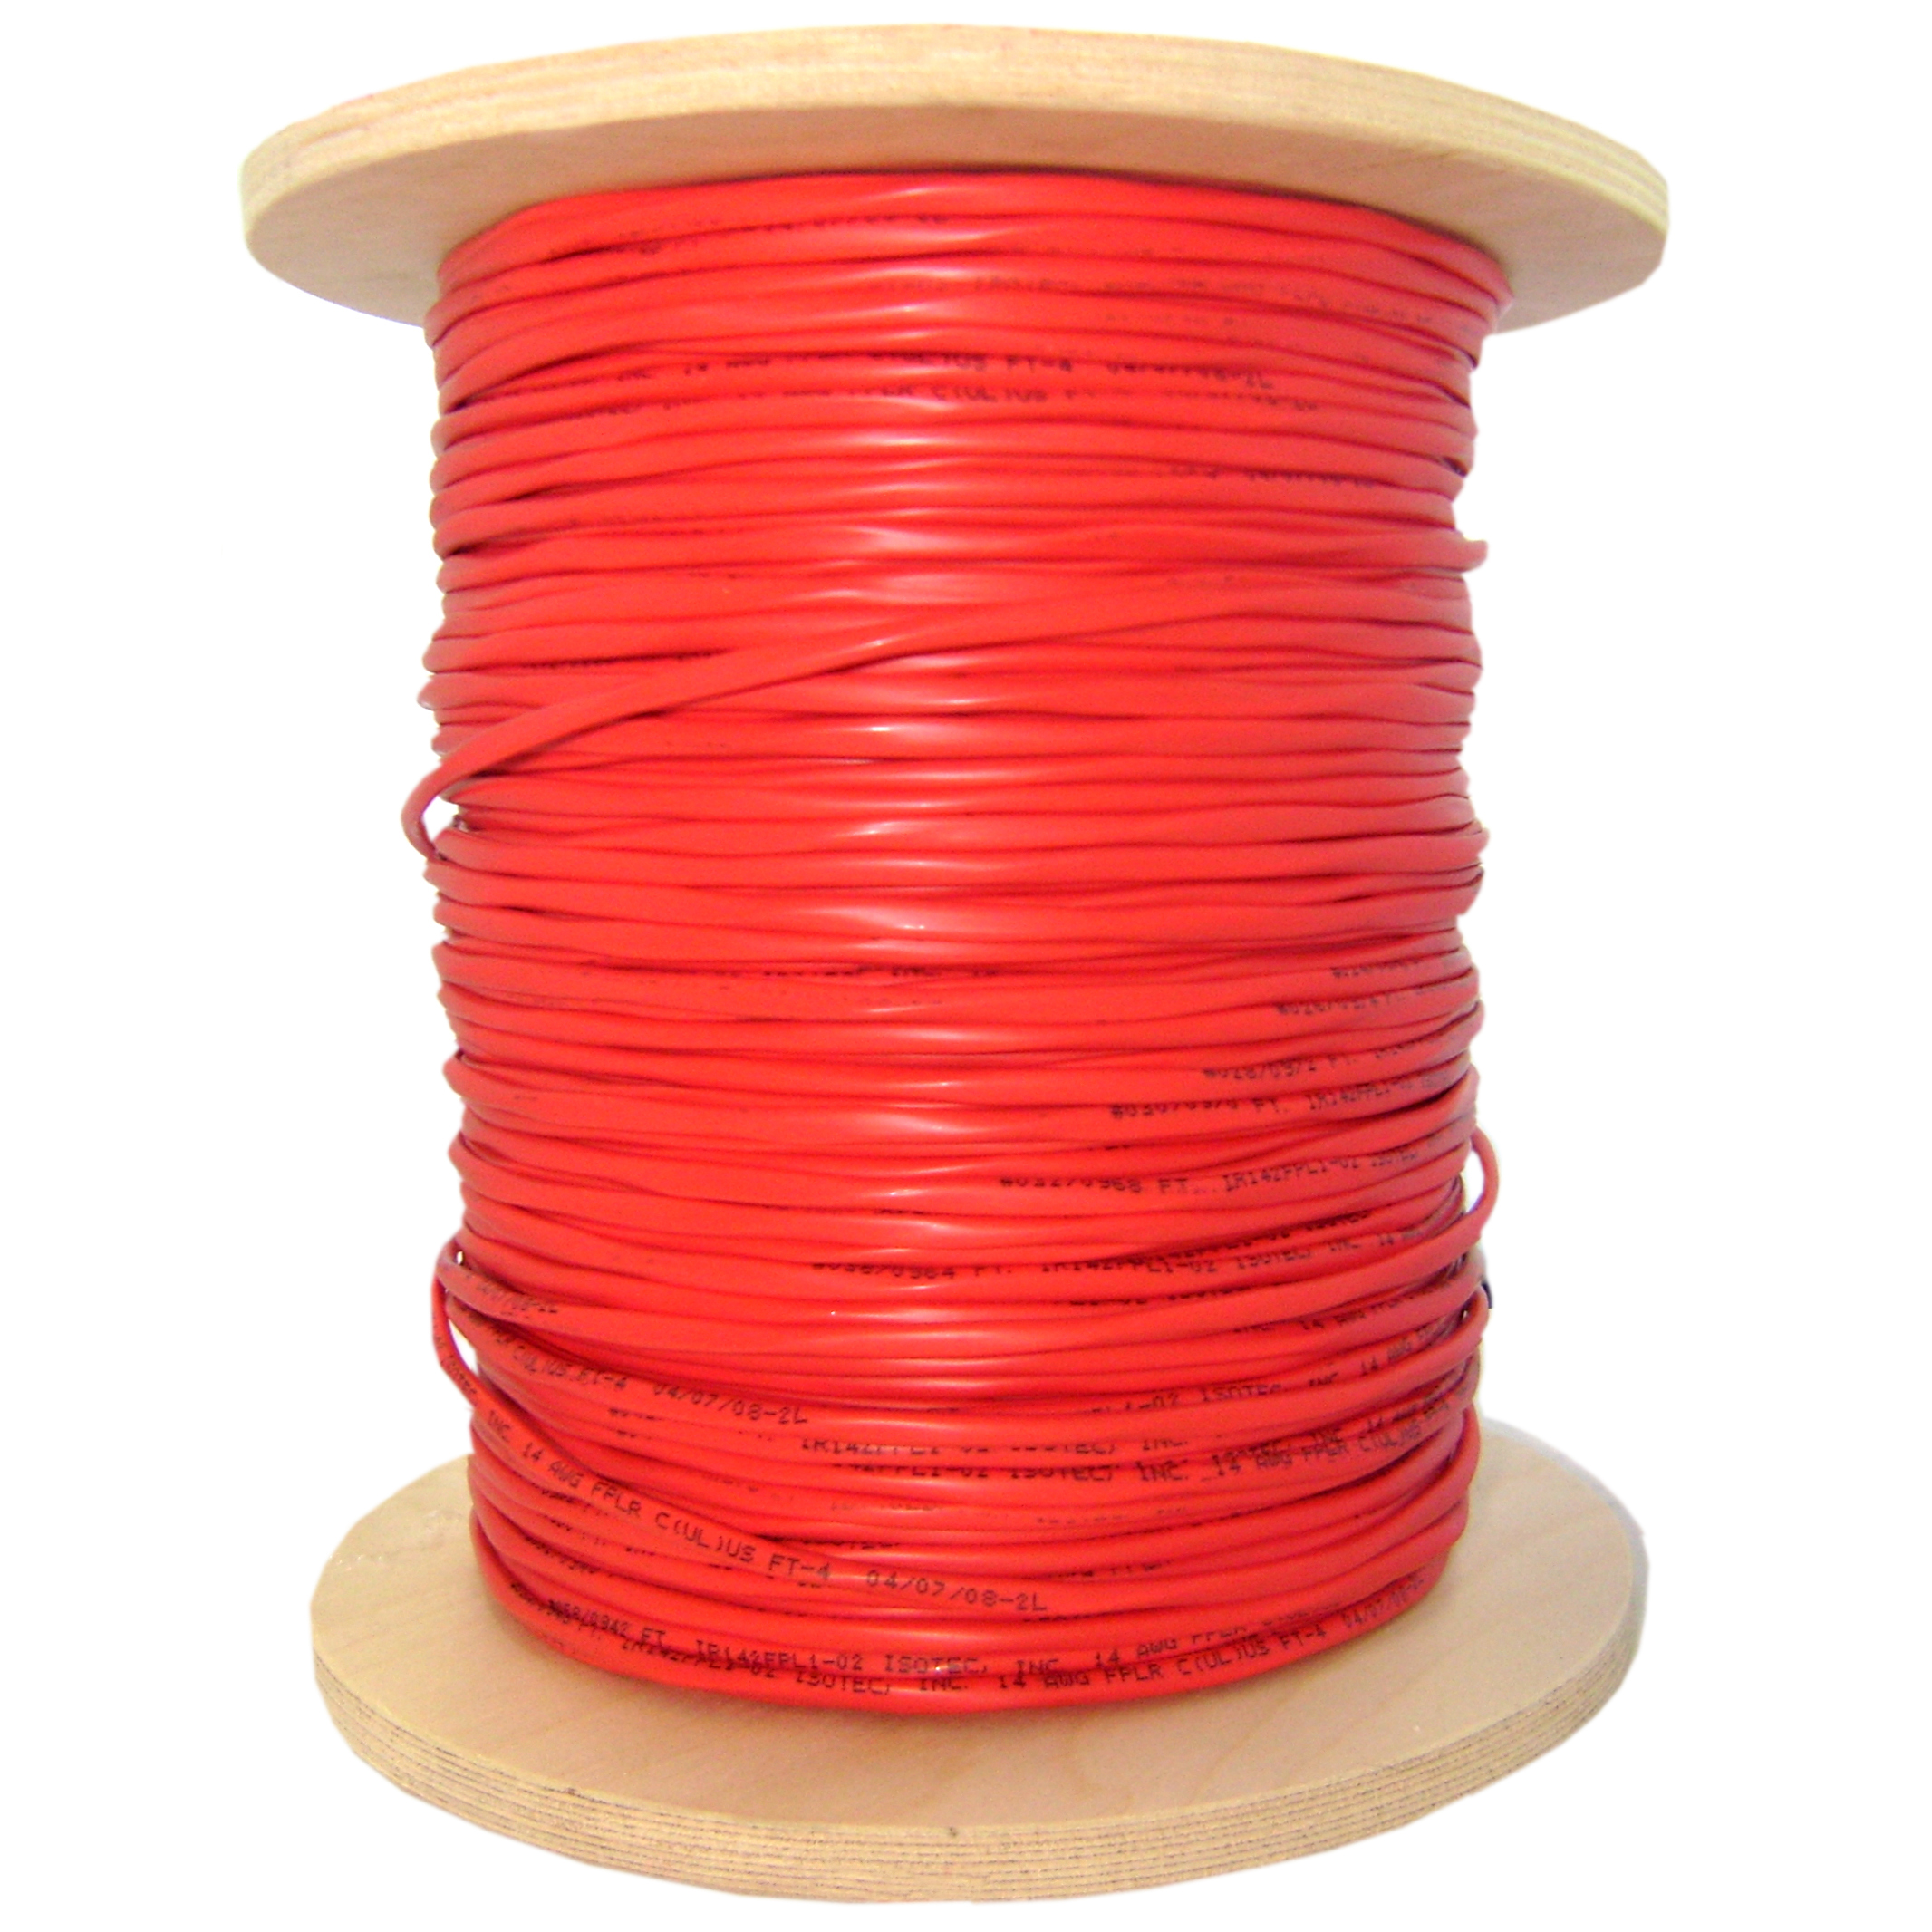 1000ft Plenum Red Fire Alarm Cable, 12/2 Solid, FPLP